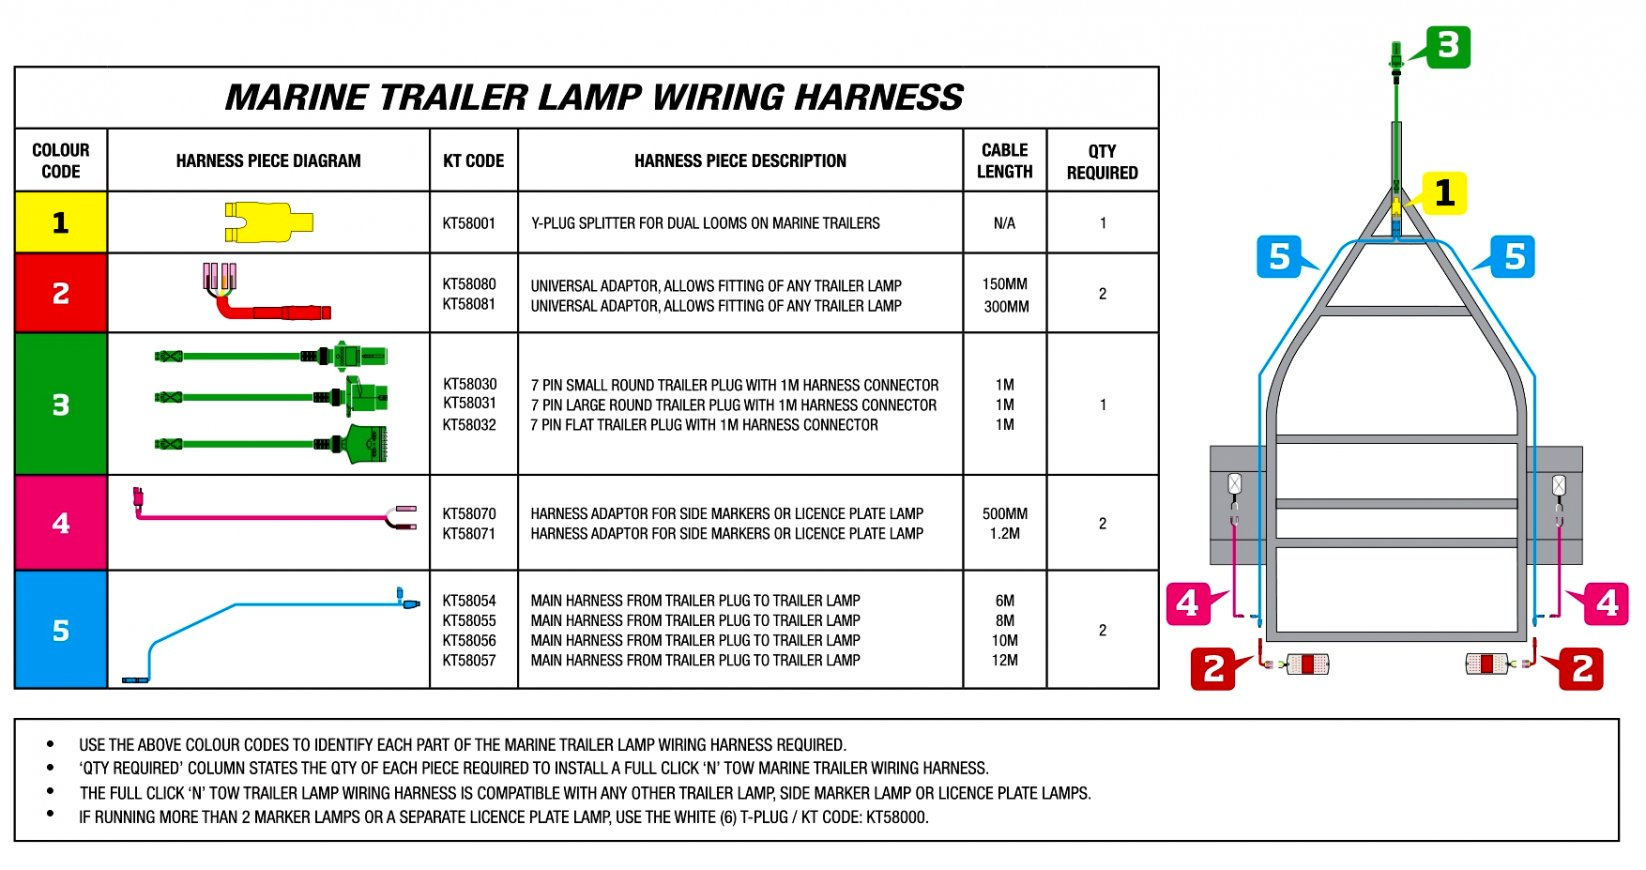 Gallery Of Trailer Light Wiring Diagram 7 Way Pin Plug Check This - 7 Pin Wiring Diagram Trailer